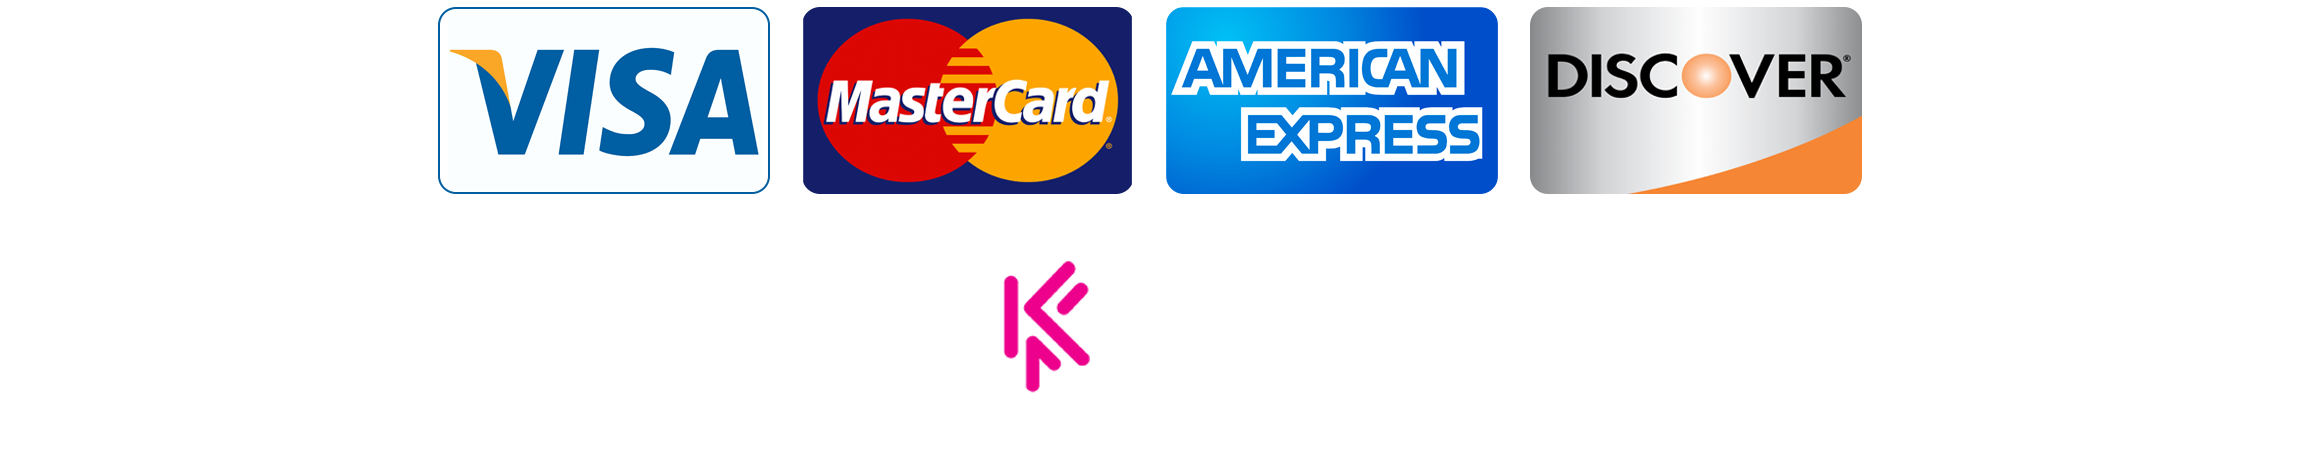 Direct purchase cards